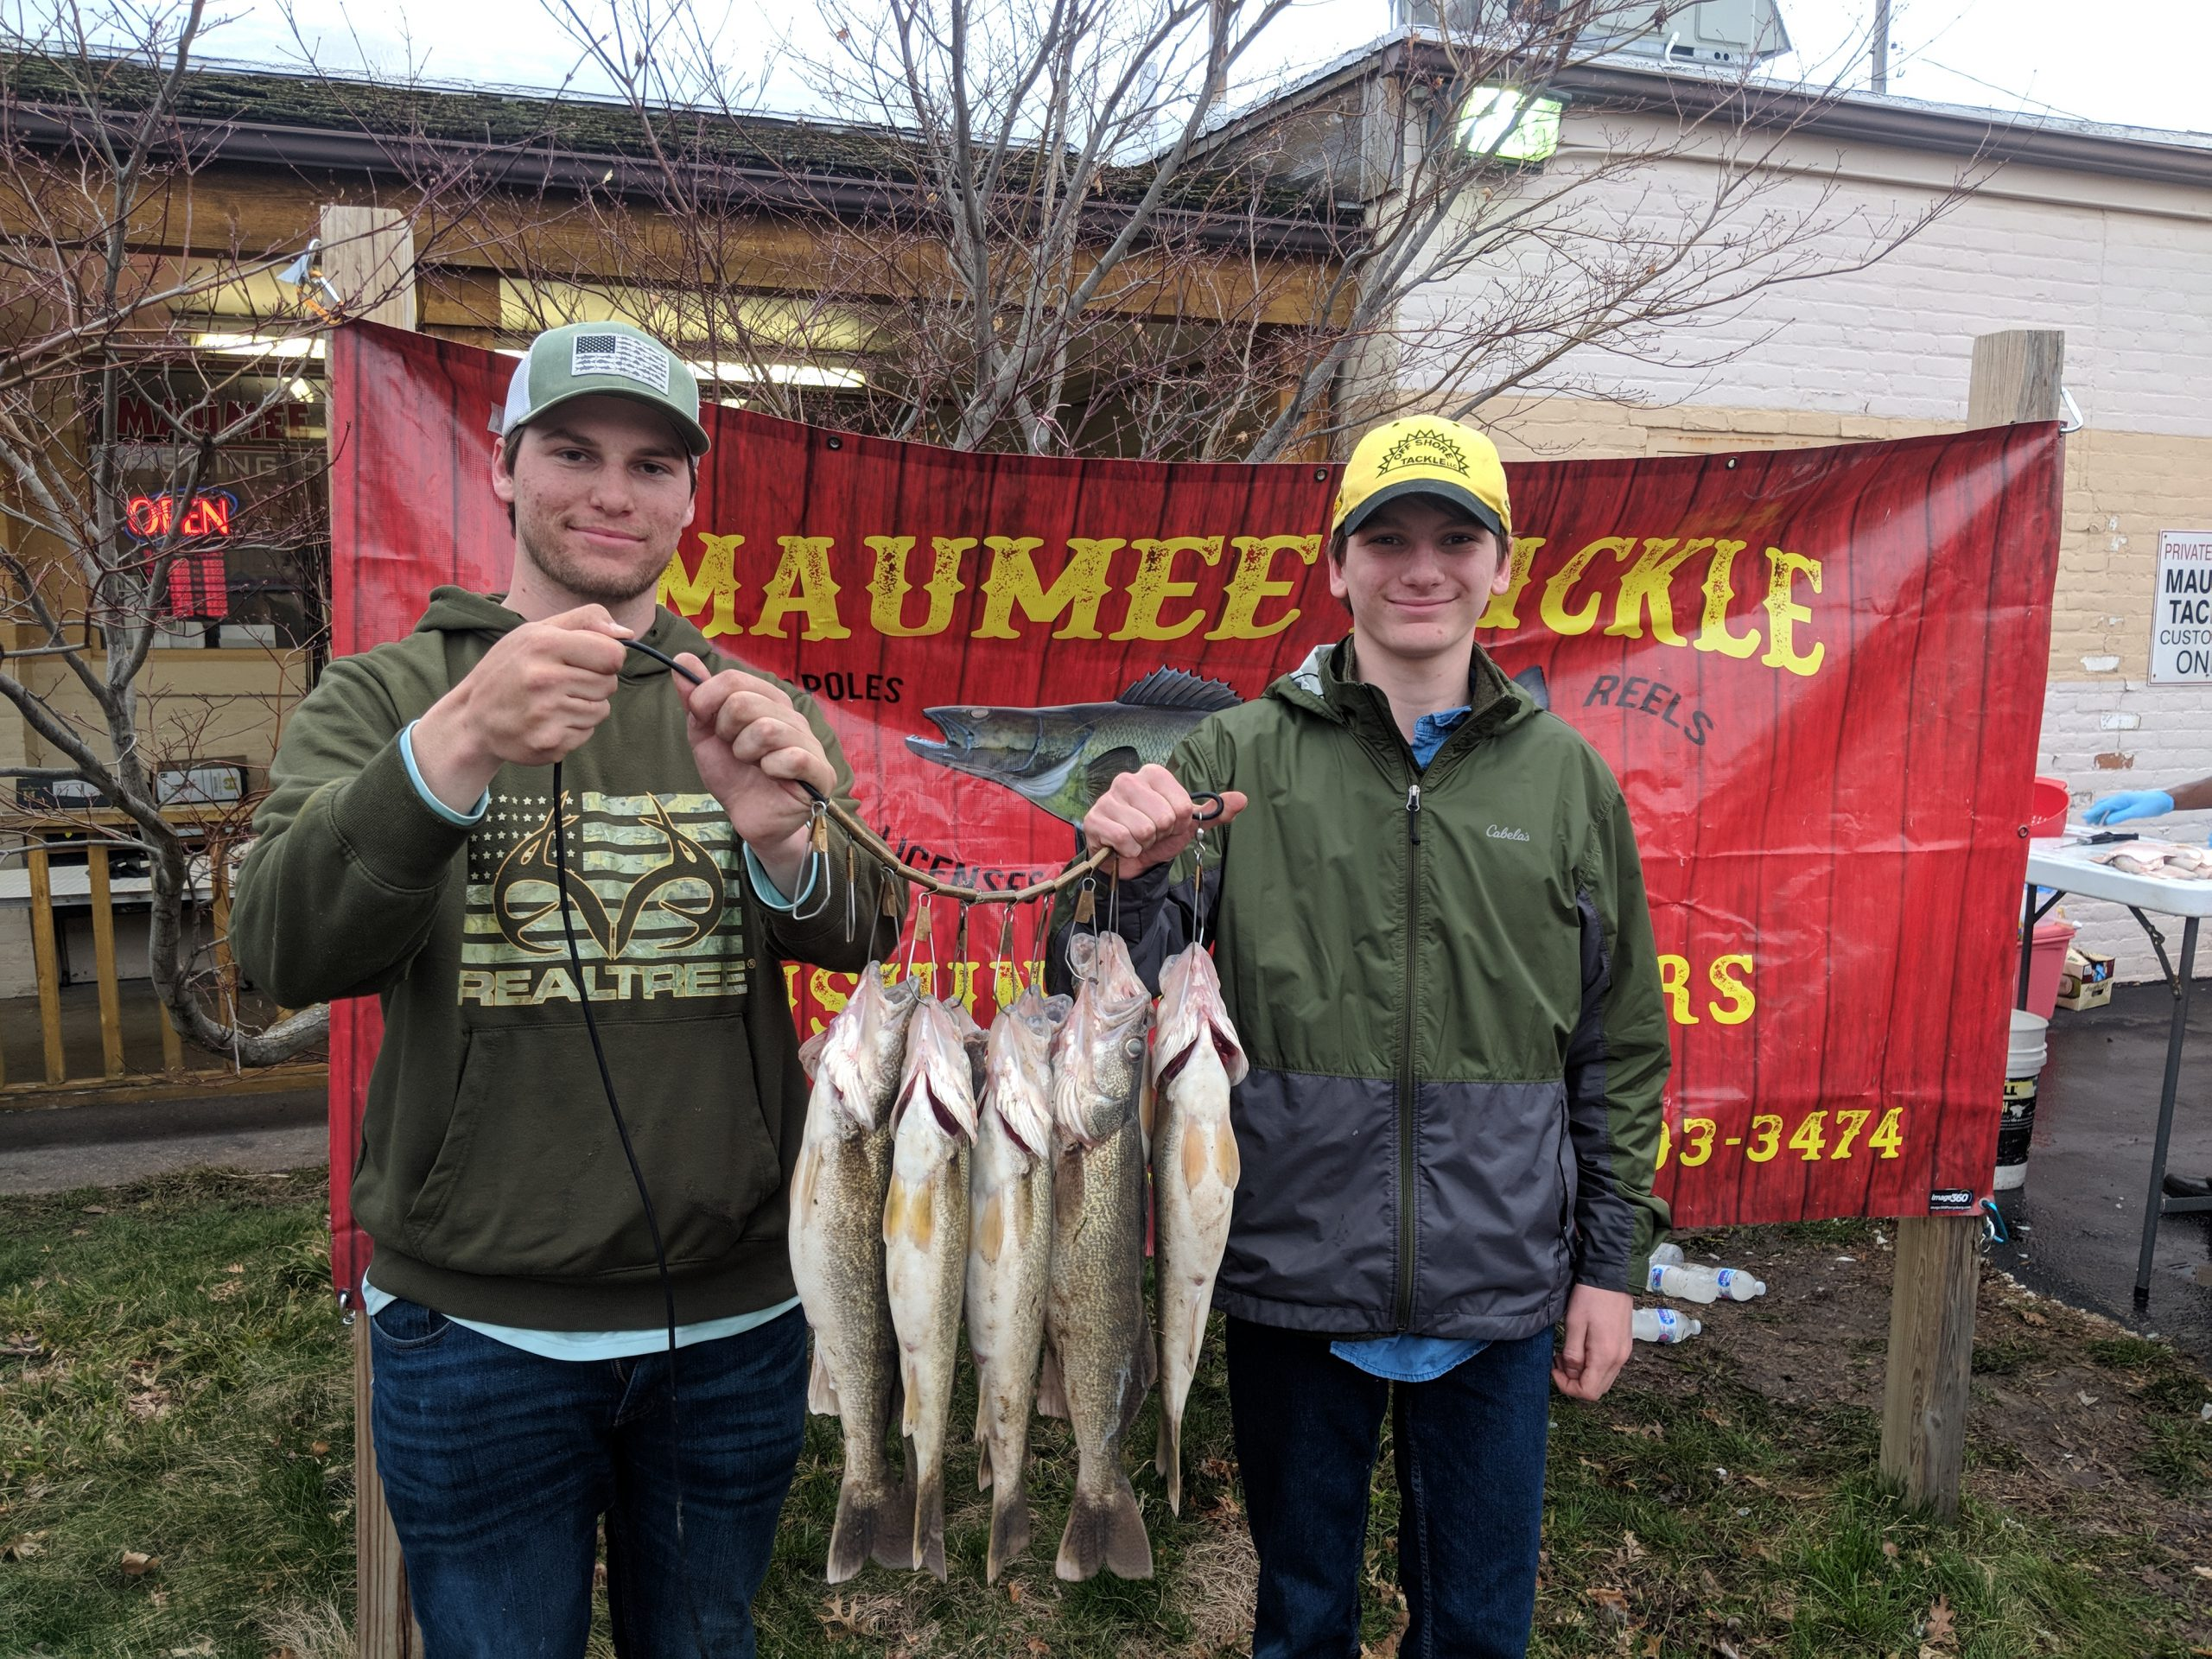 Maumee river report- 27 March 2020